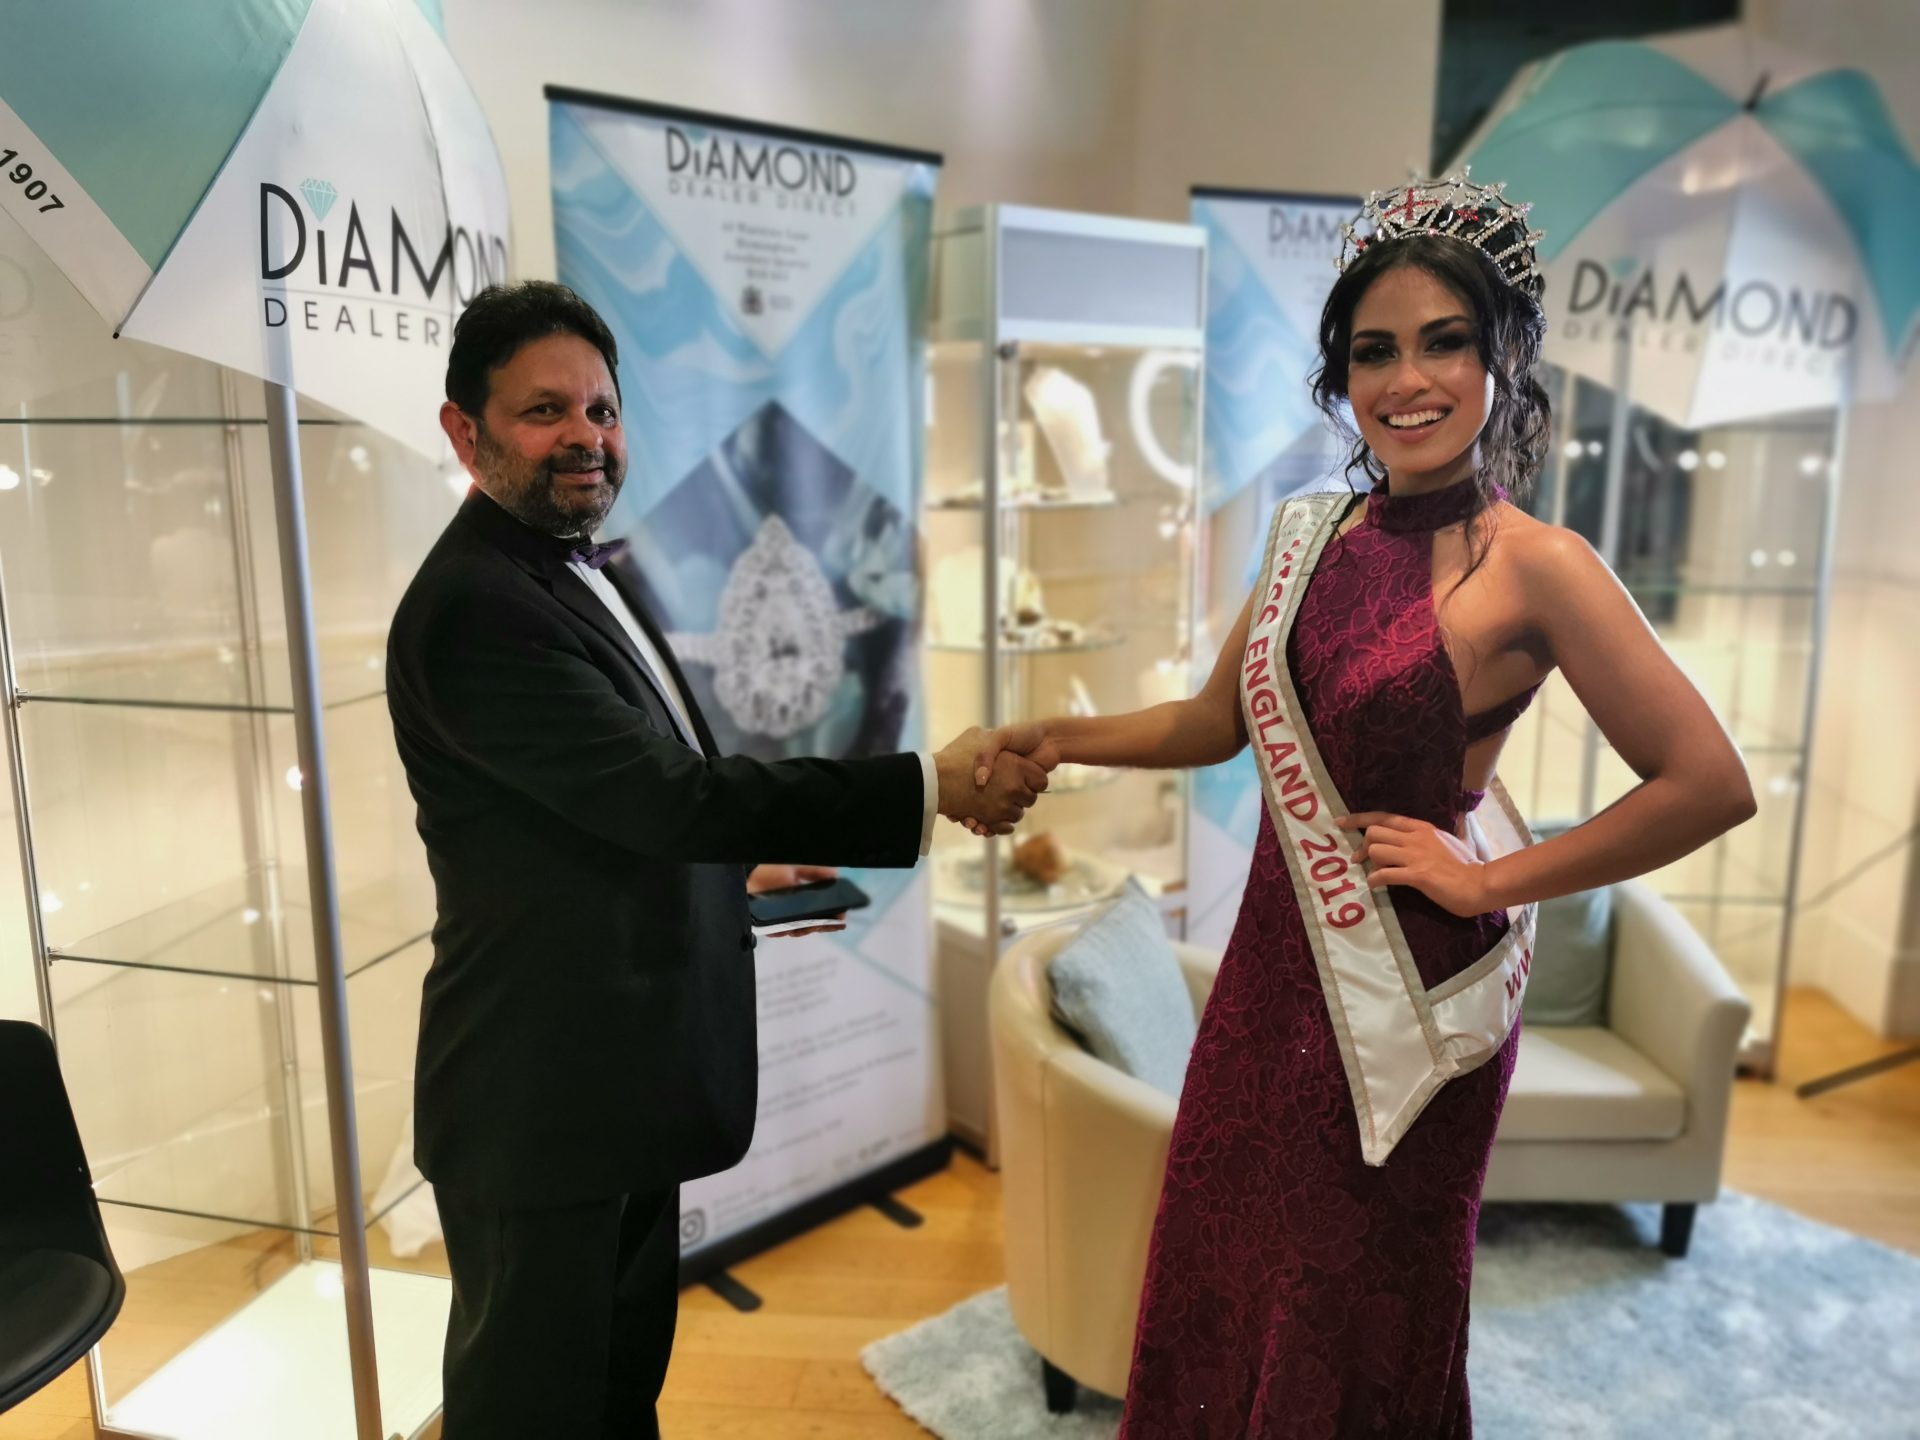 Birmingham's Diamond Dealer Direct donates charity Auction gift to Miss England Doctor